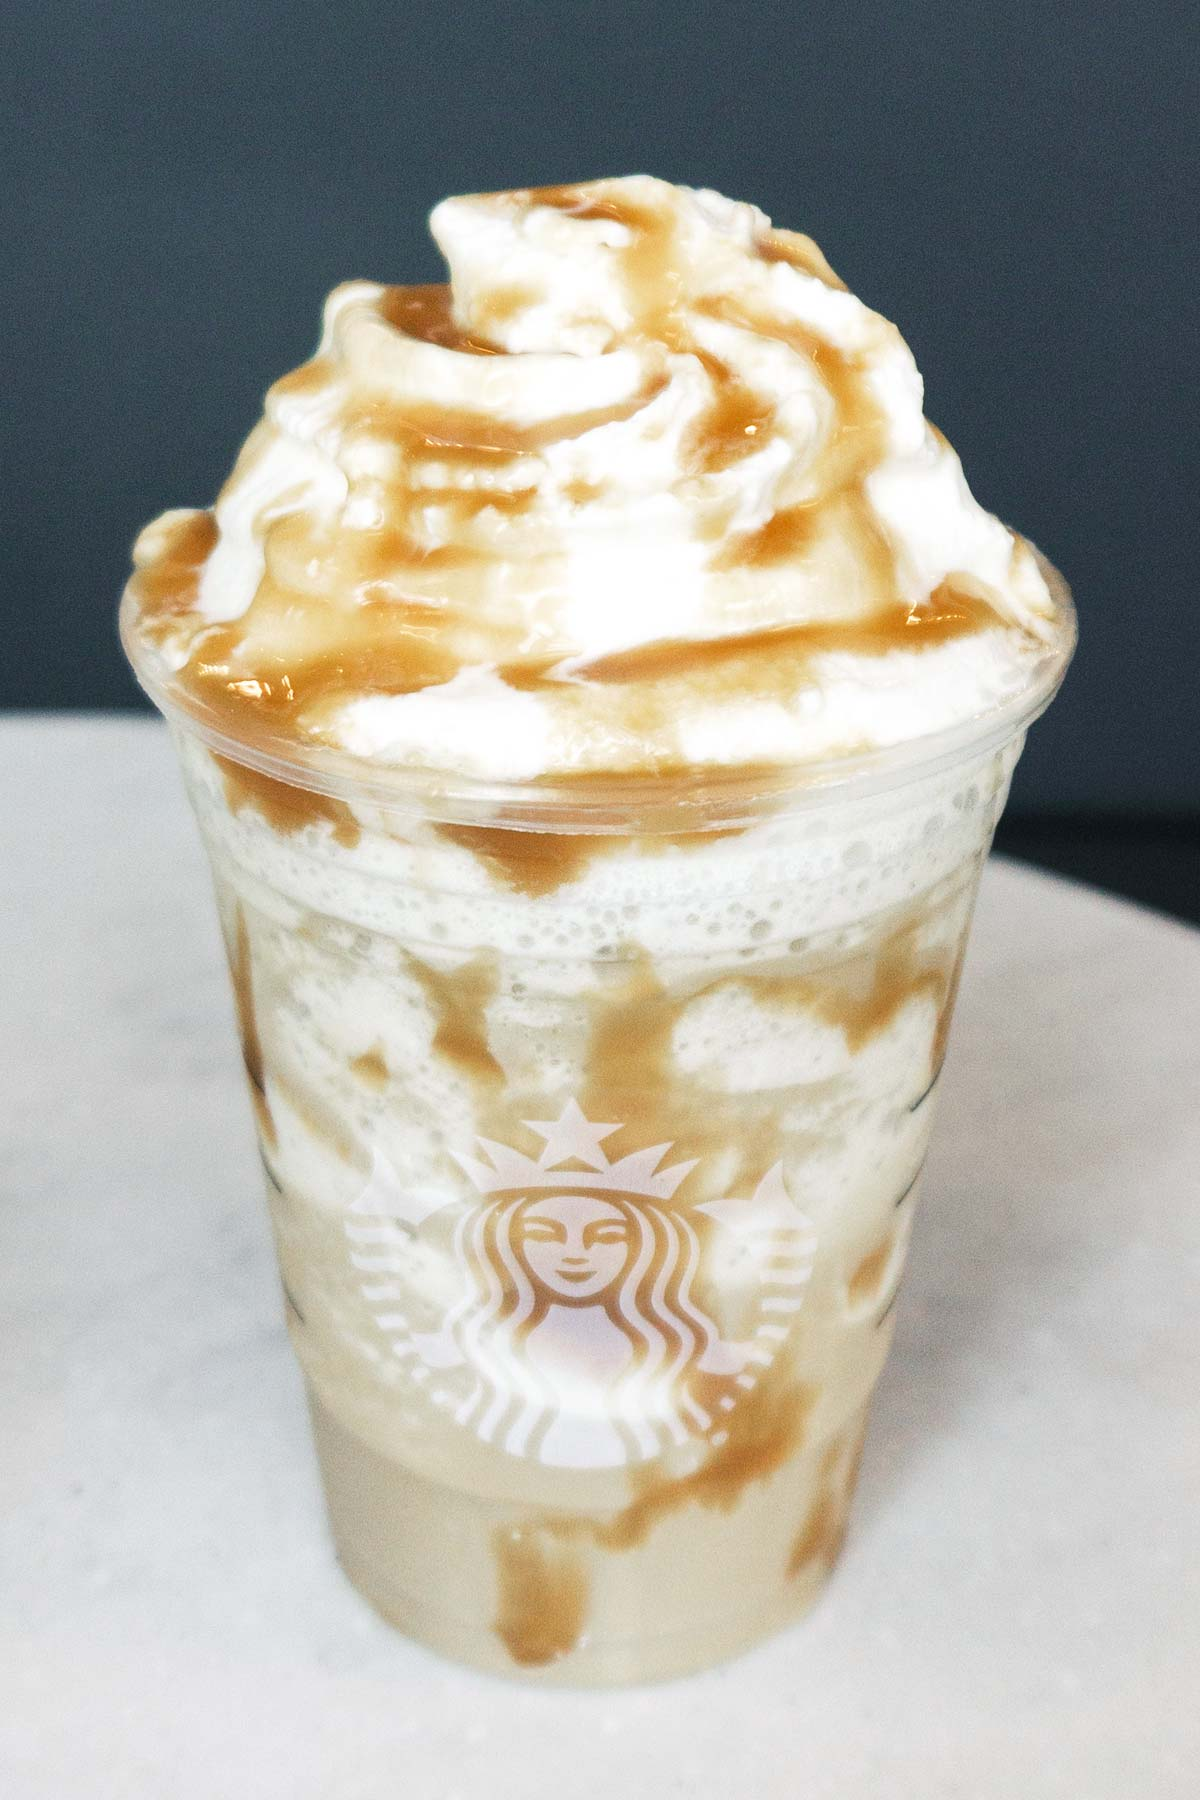 Starbucks Secret Menu Drink Butterbeer Frappuccino in a cup with whipped cream.